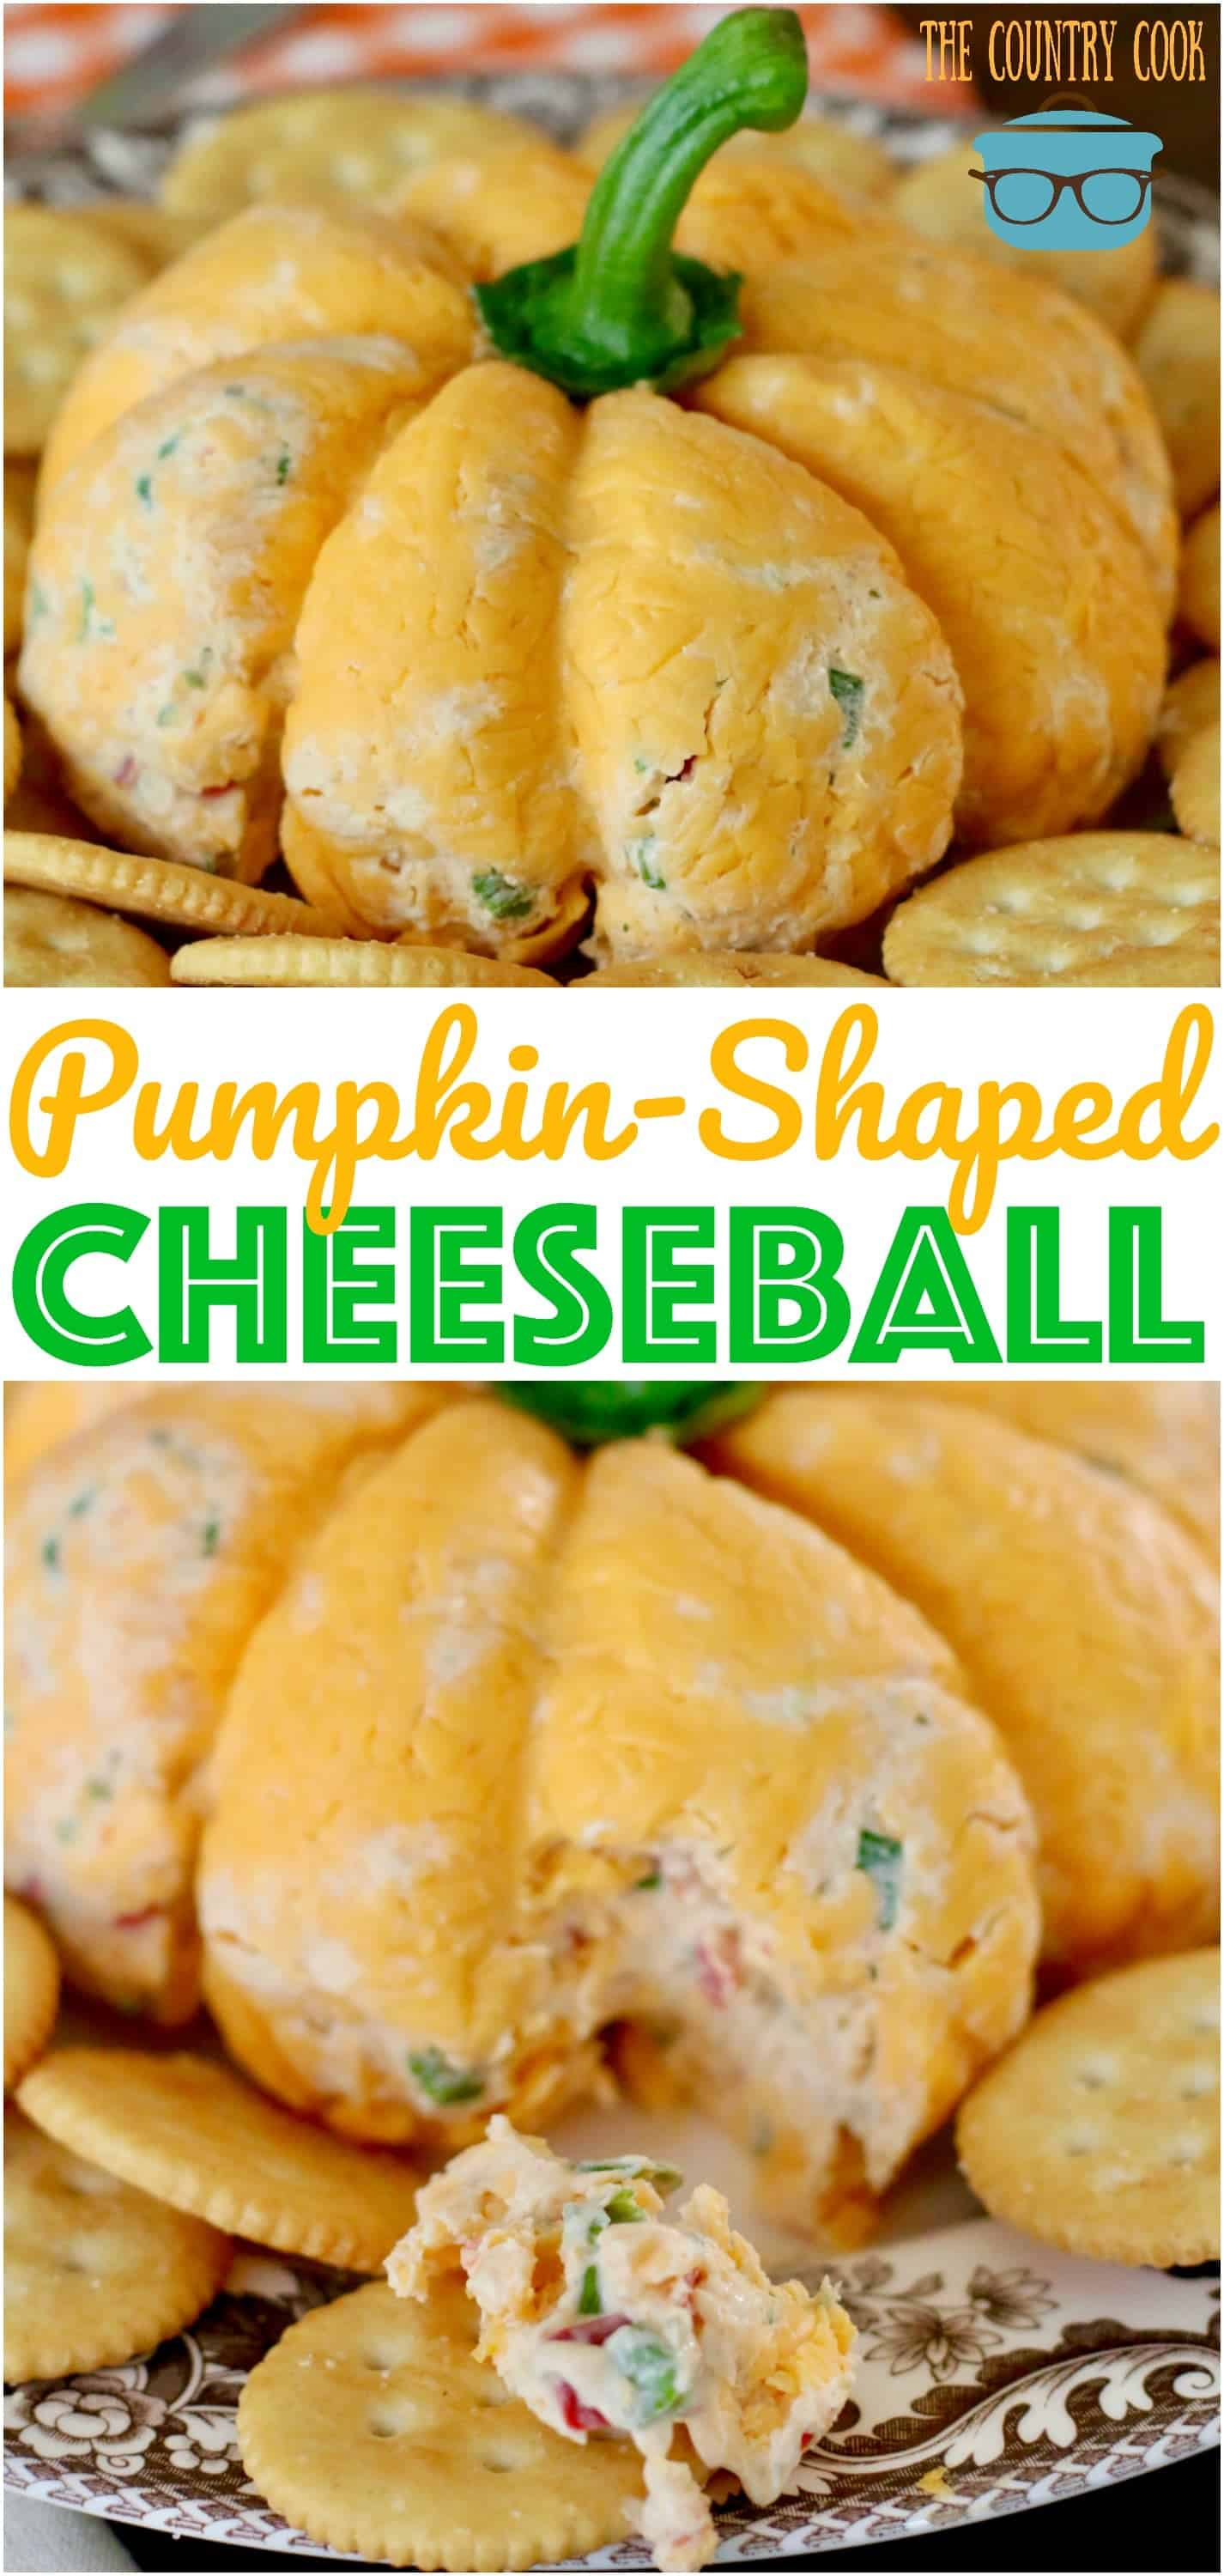 Pumpkin-Shaped Cheeseball recipe from The Country Cook #easy #recipes #appetizer #holidays #Thanksgiving #ideas #thebest #creamcheese #vegetable #entertaining